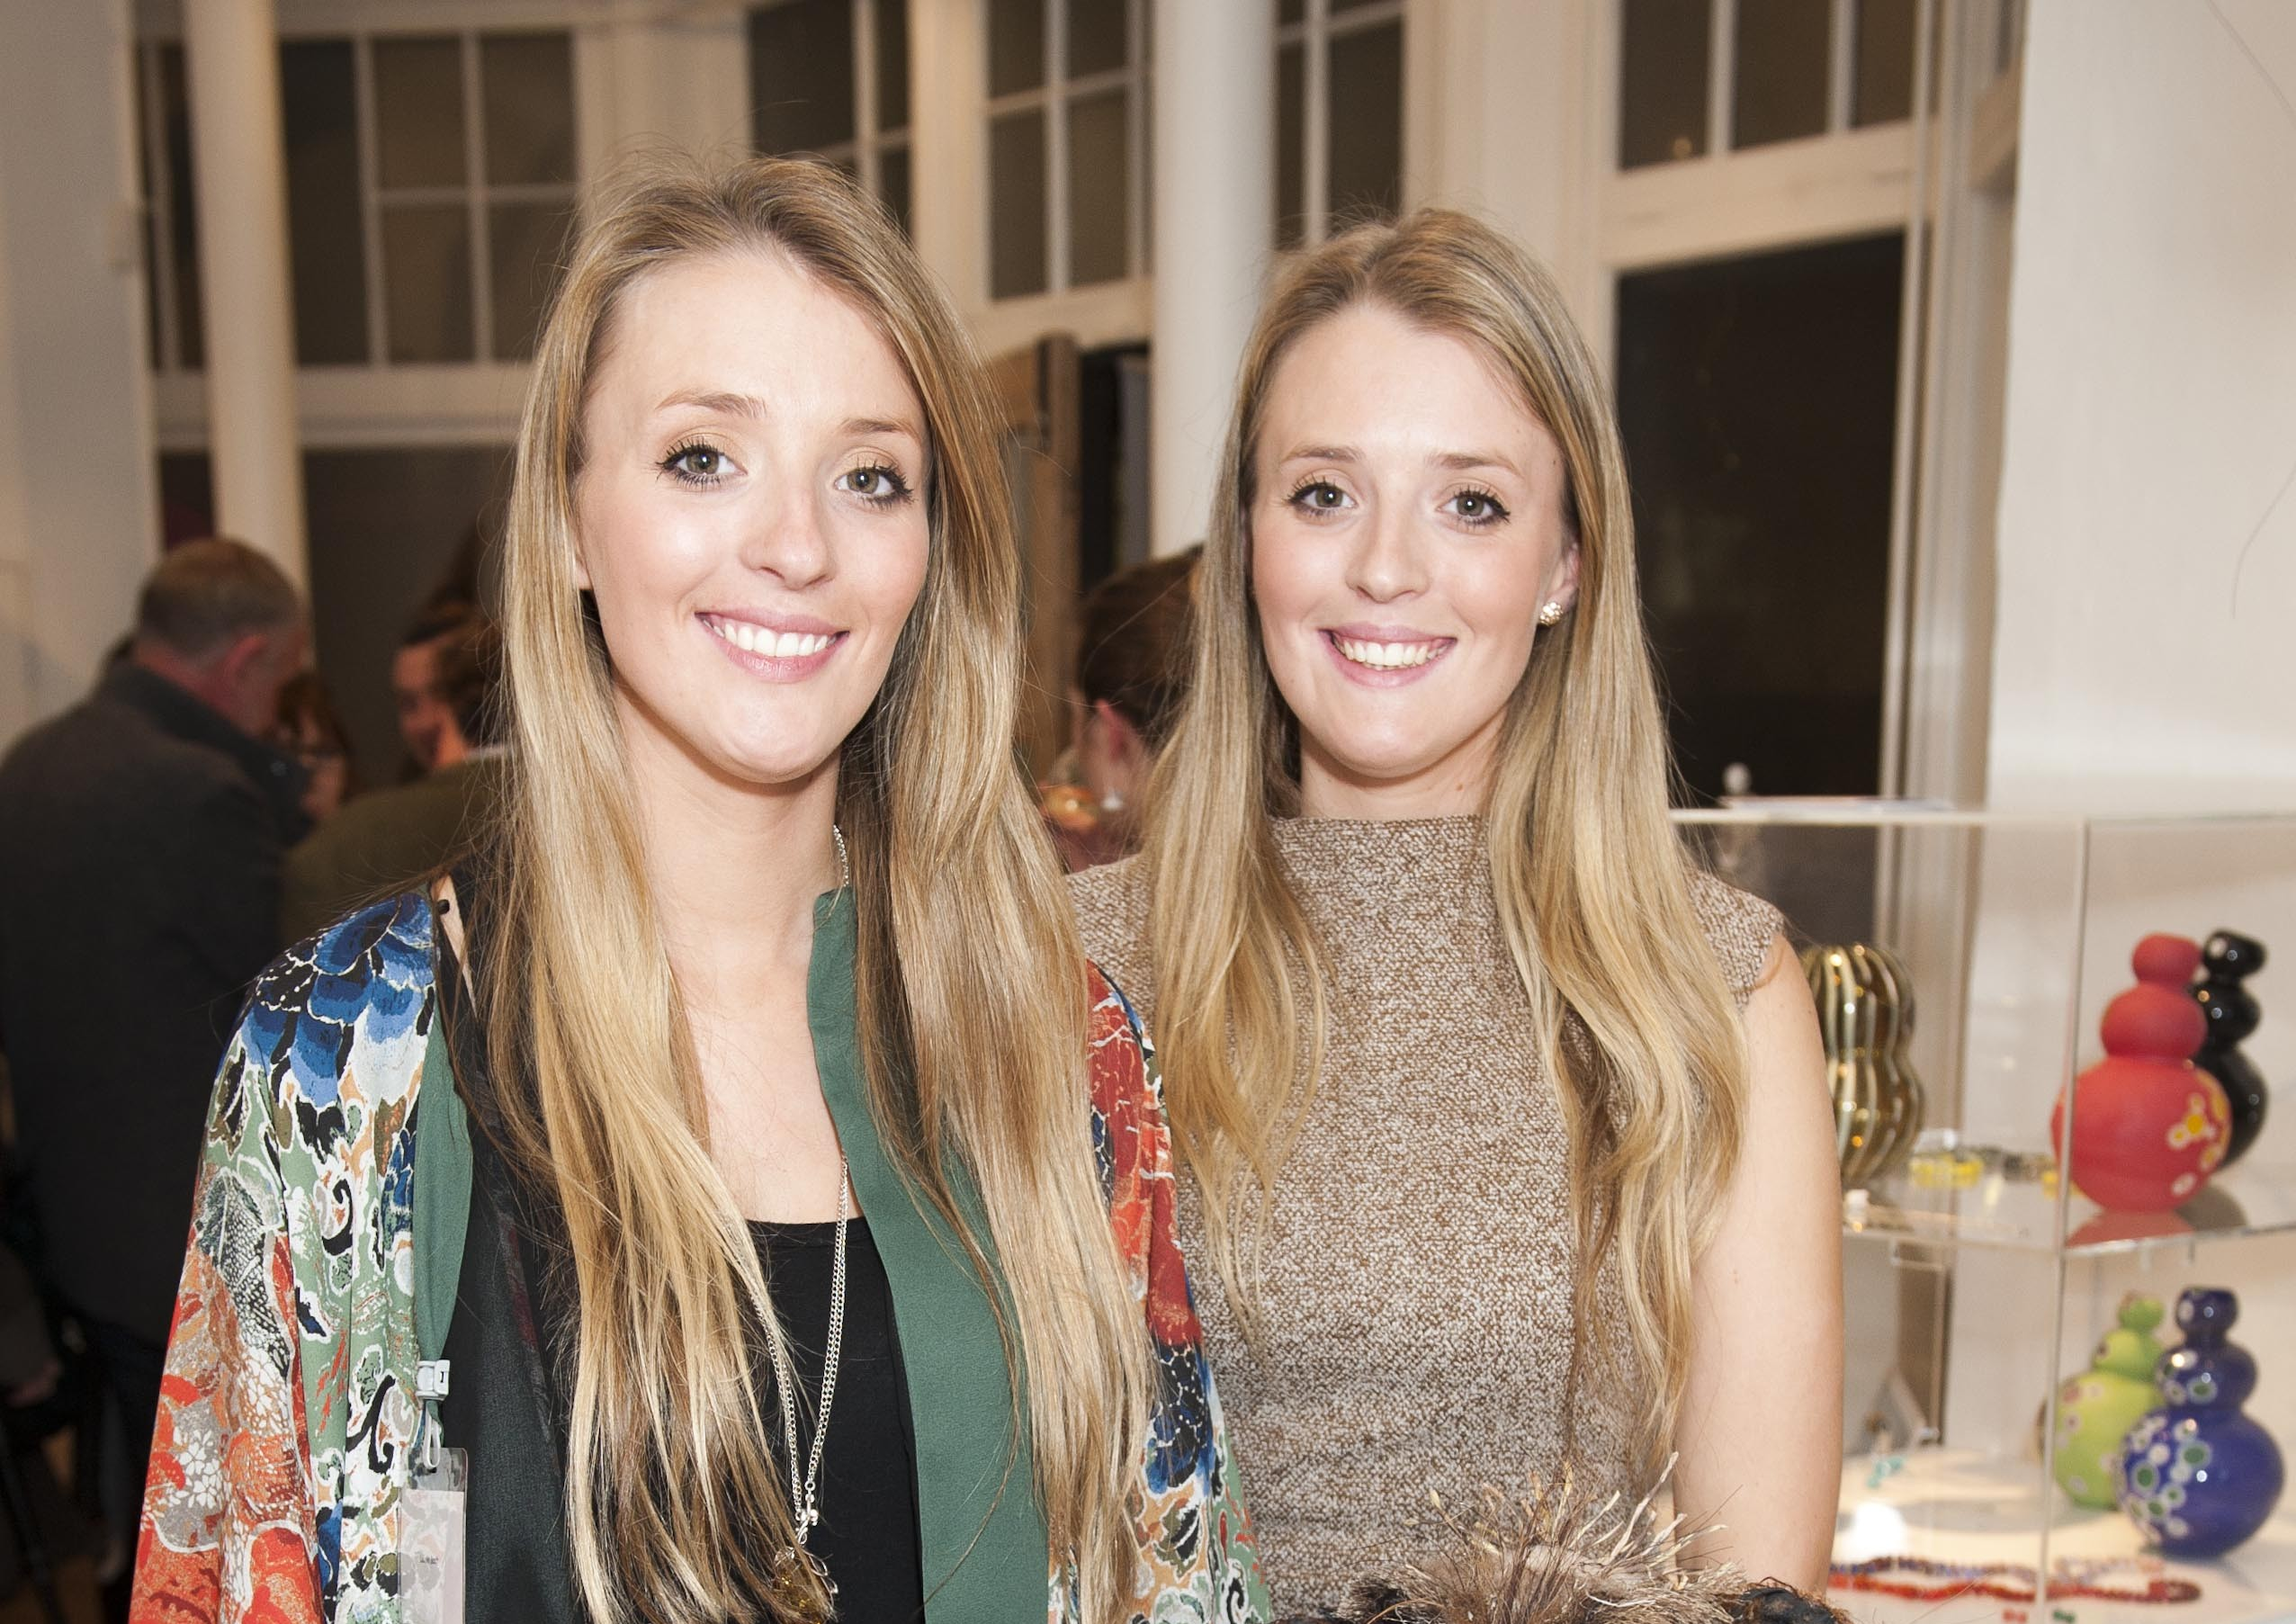 Twins Julie and Lauren have 'Great Expectations' of success